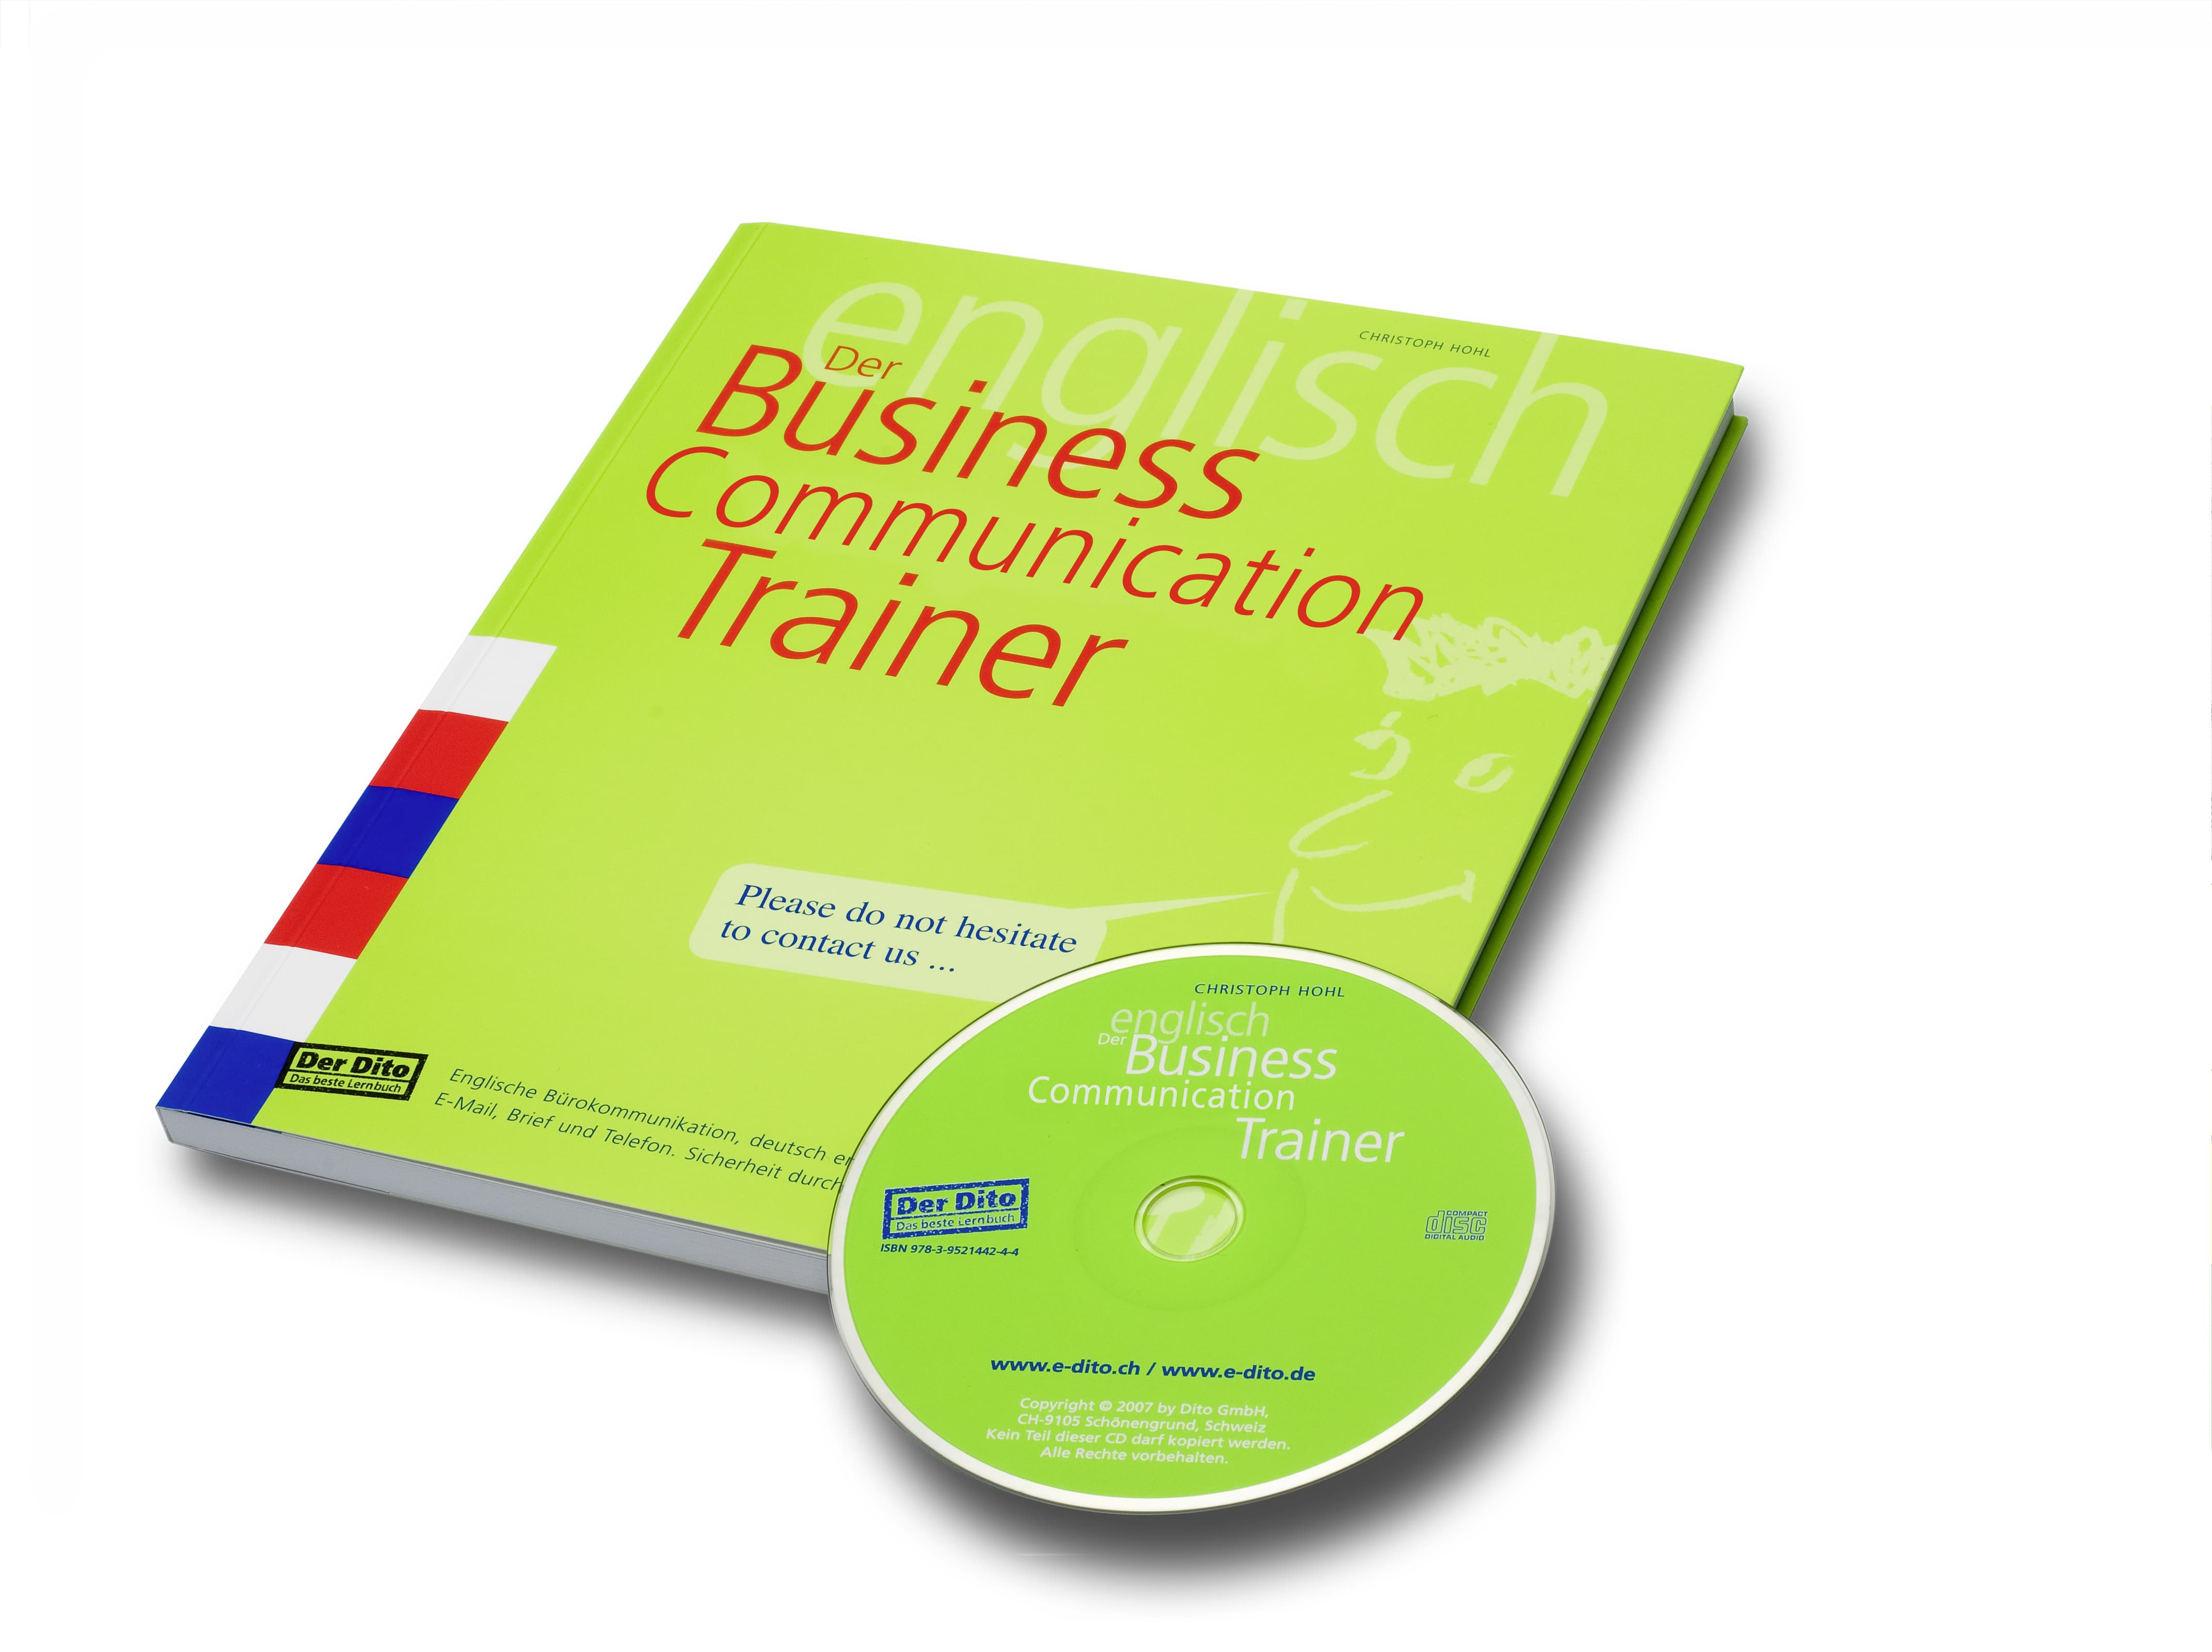 Der Business-Communication-Trainer